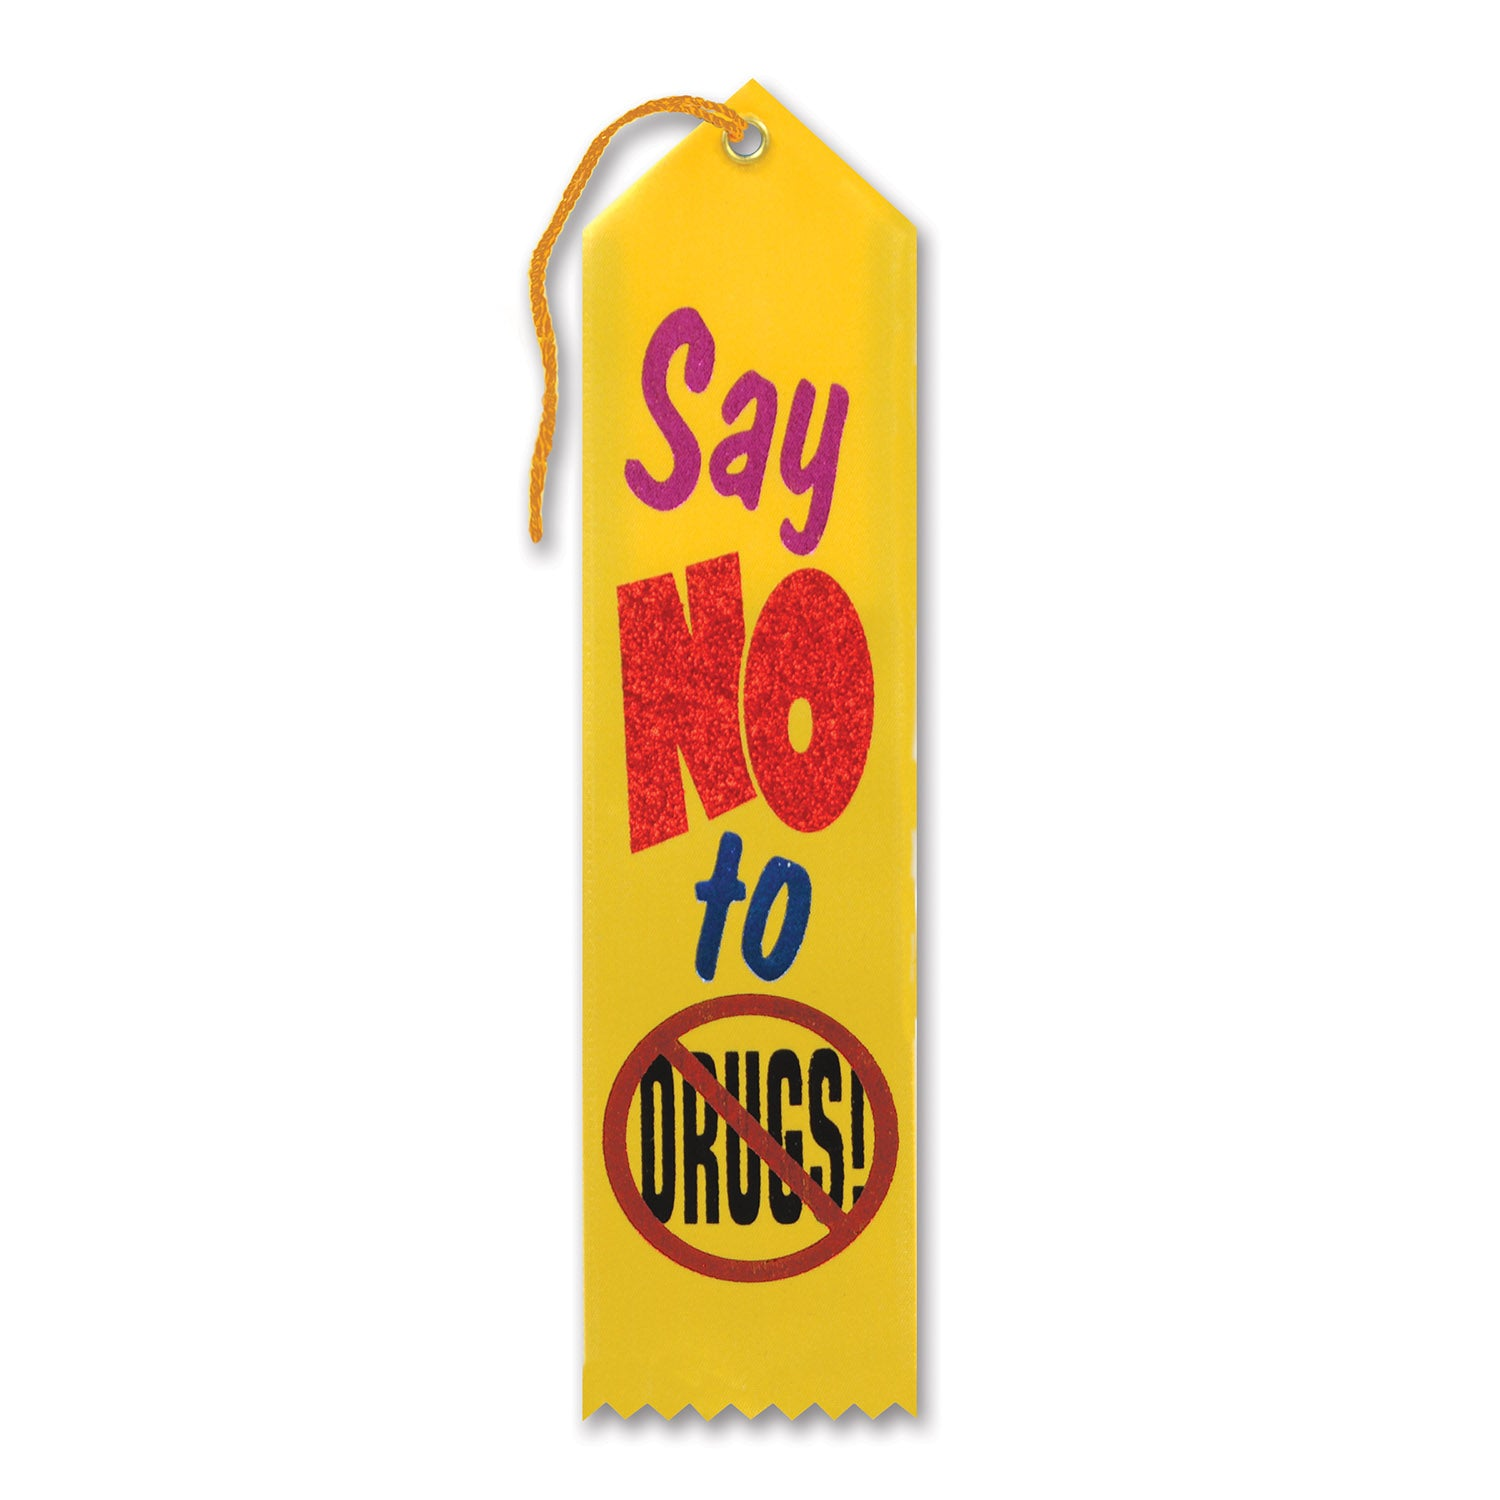 Say No To Drugs Award Ribbon by Beistle - School Awards and Supplies Decorations